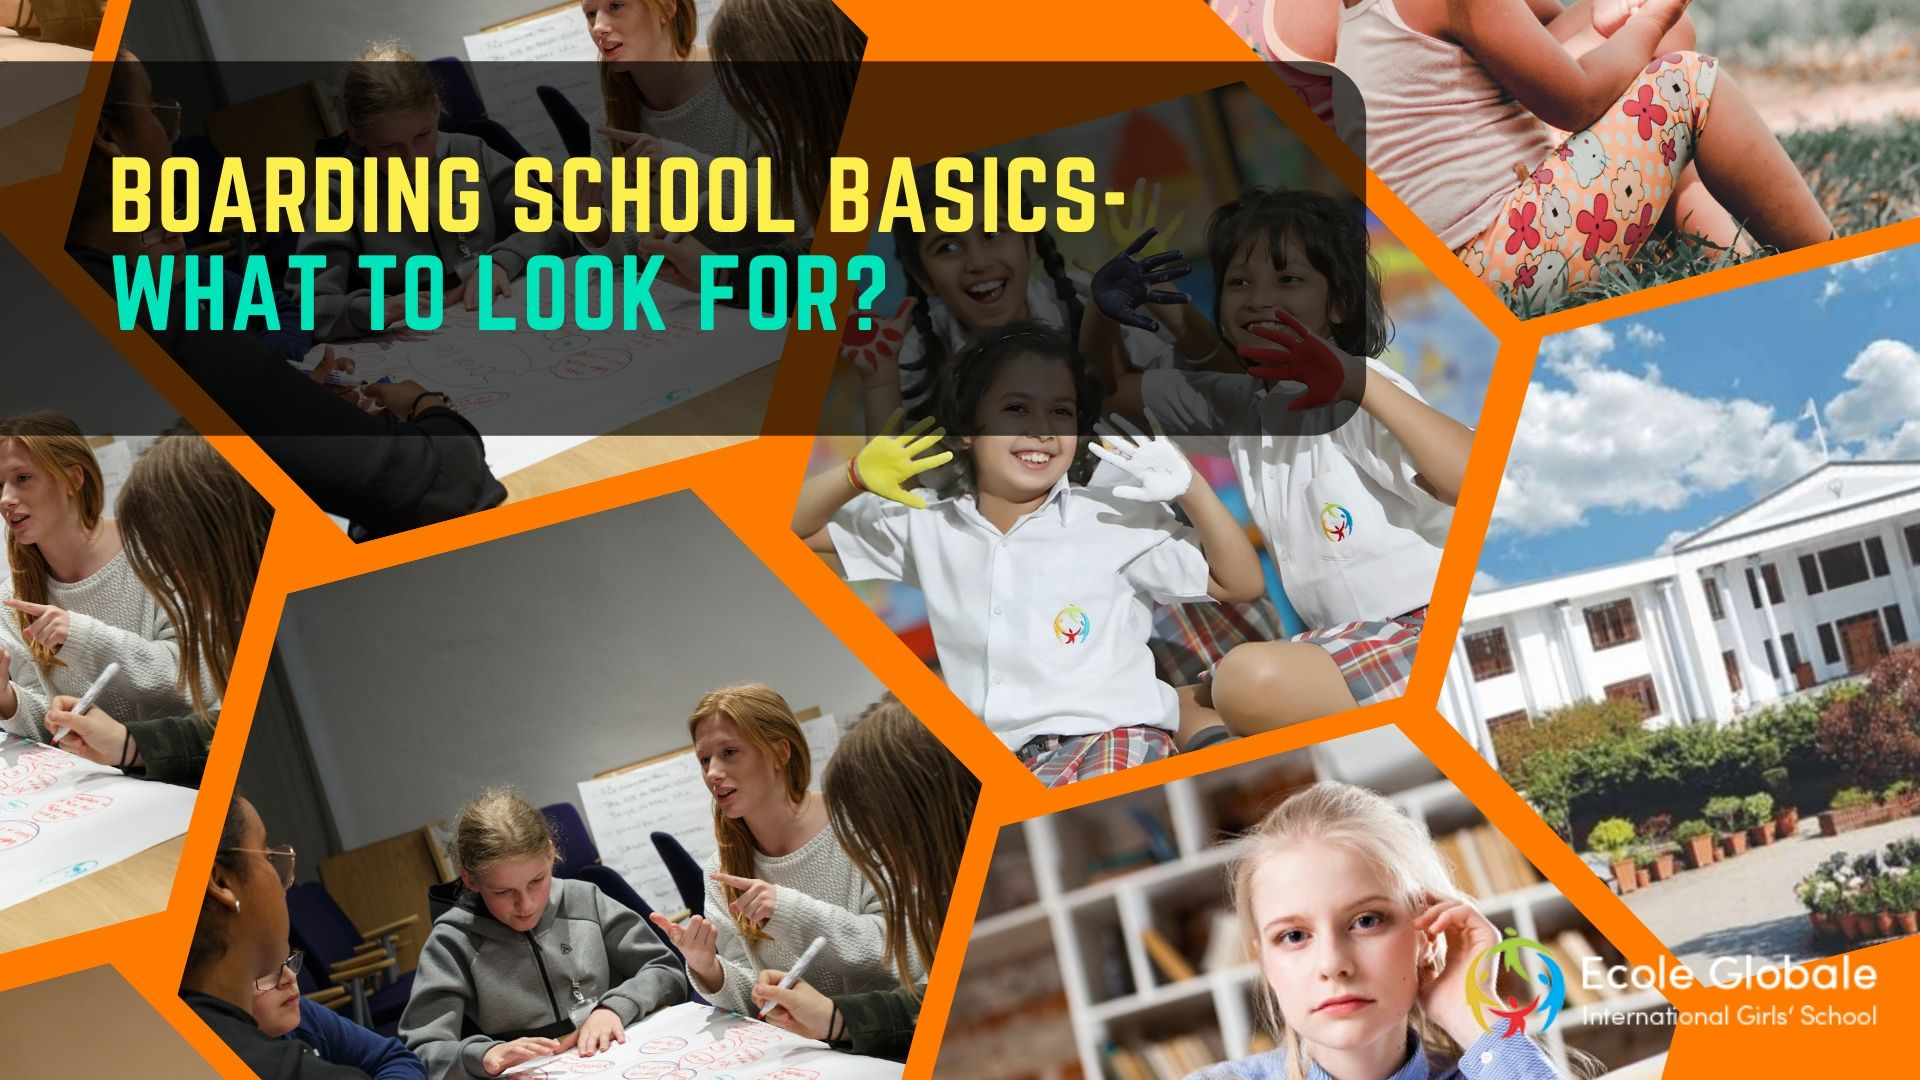 Points to Keep in Mind While Choosing Boarding Schools